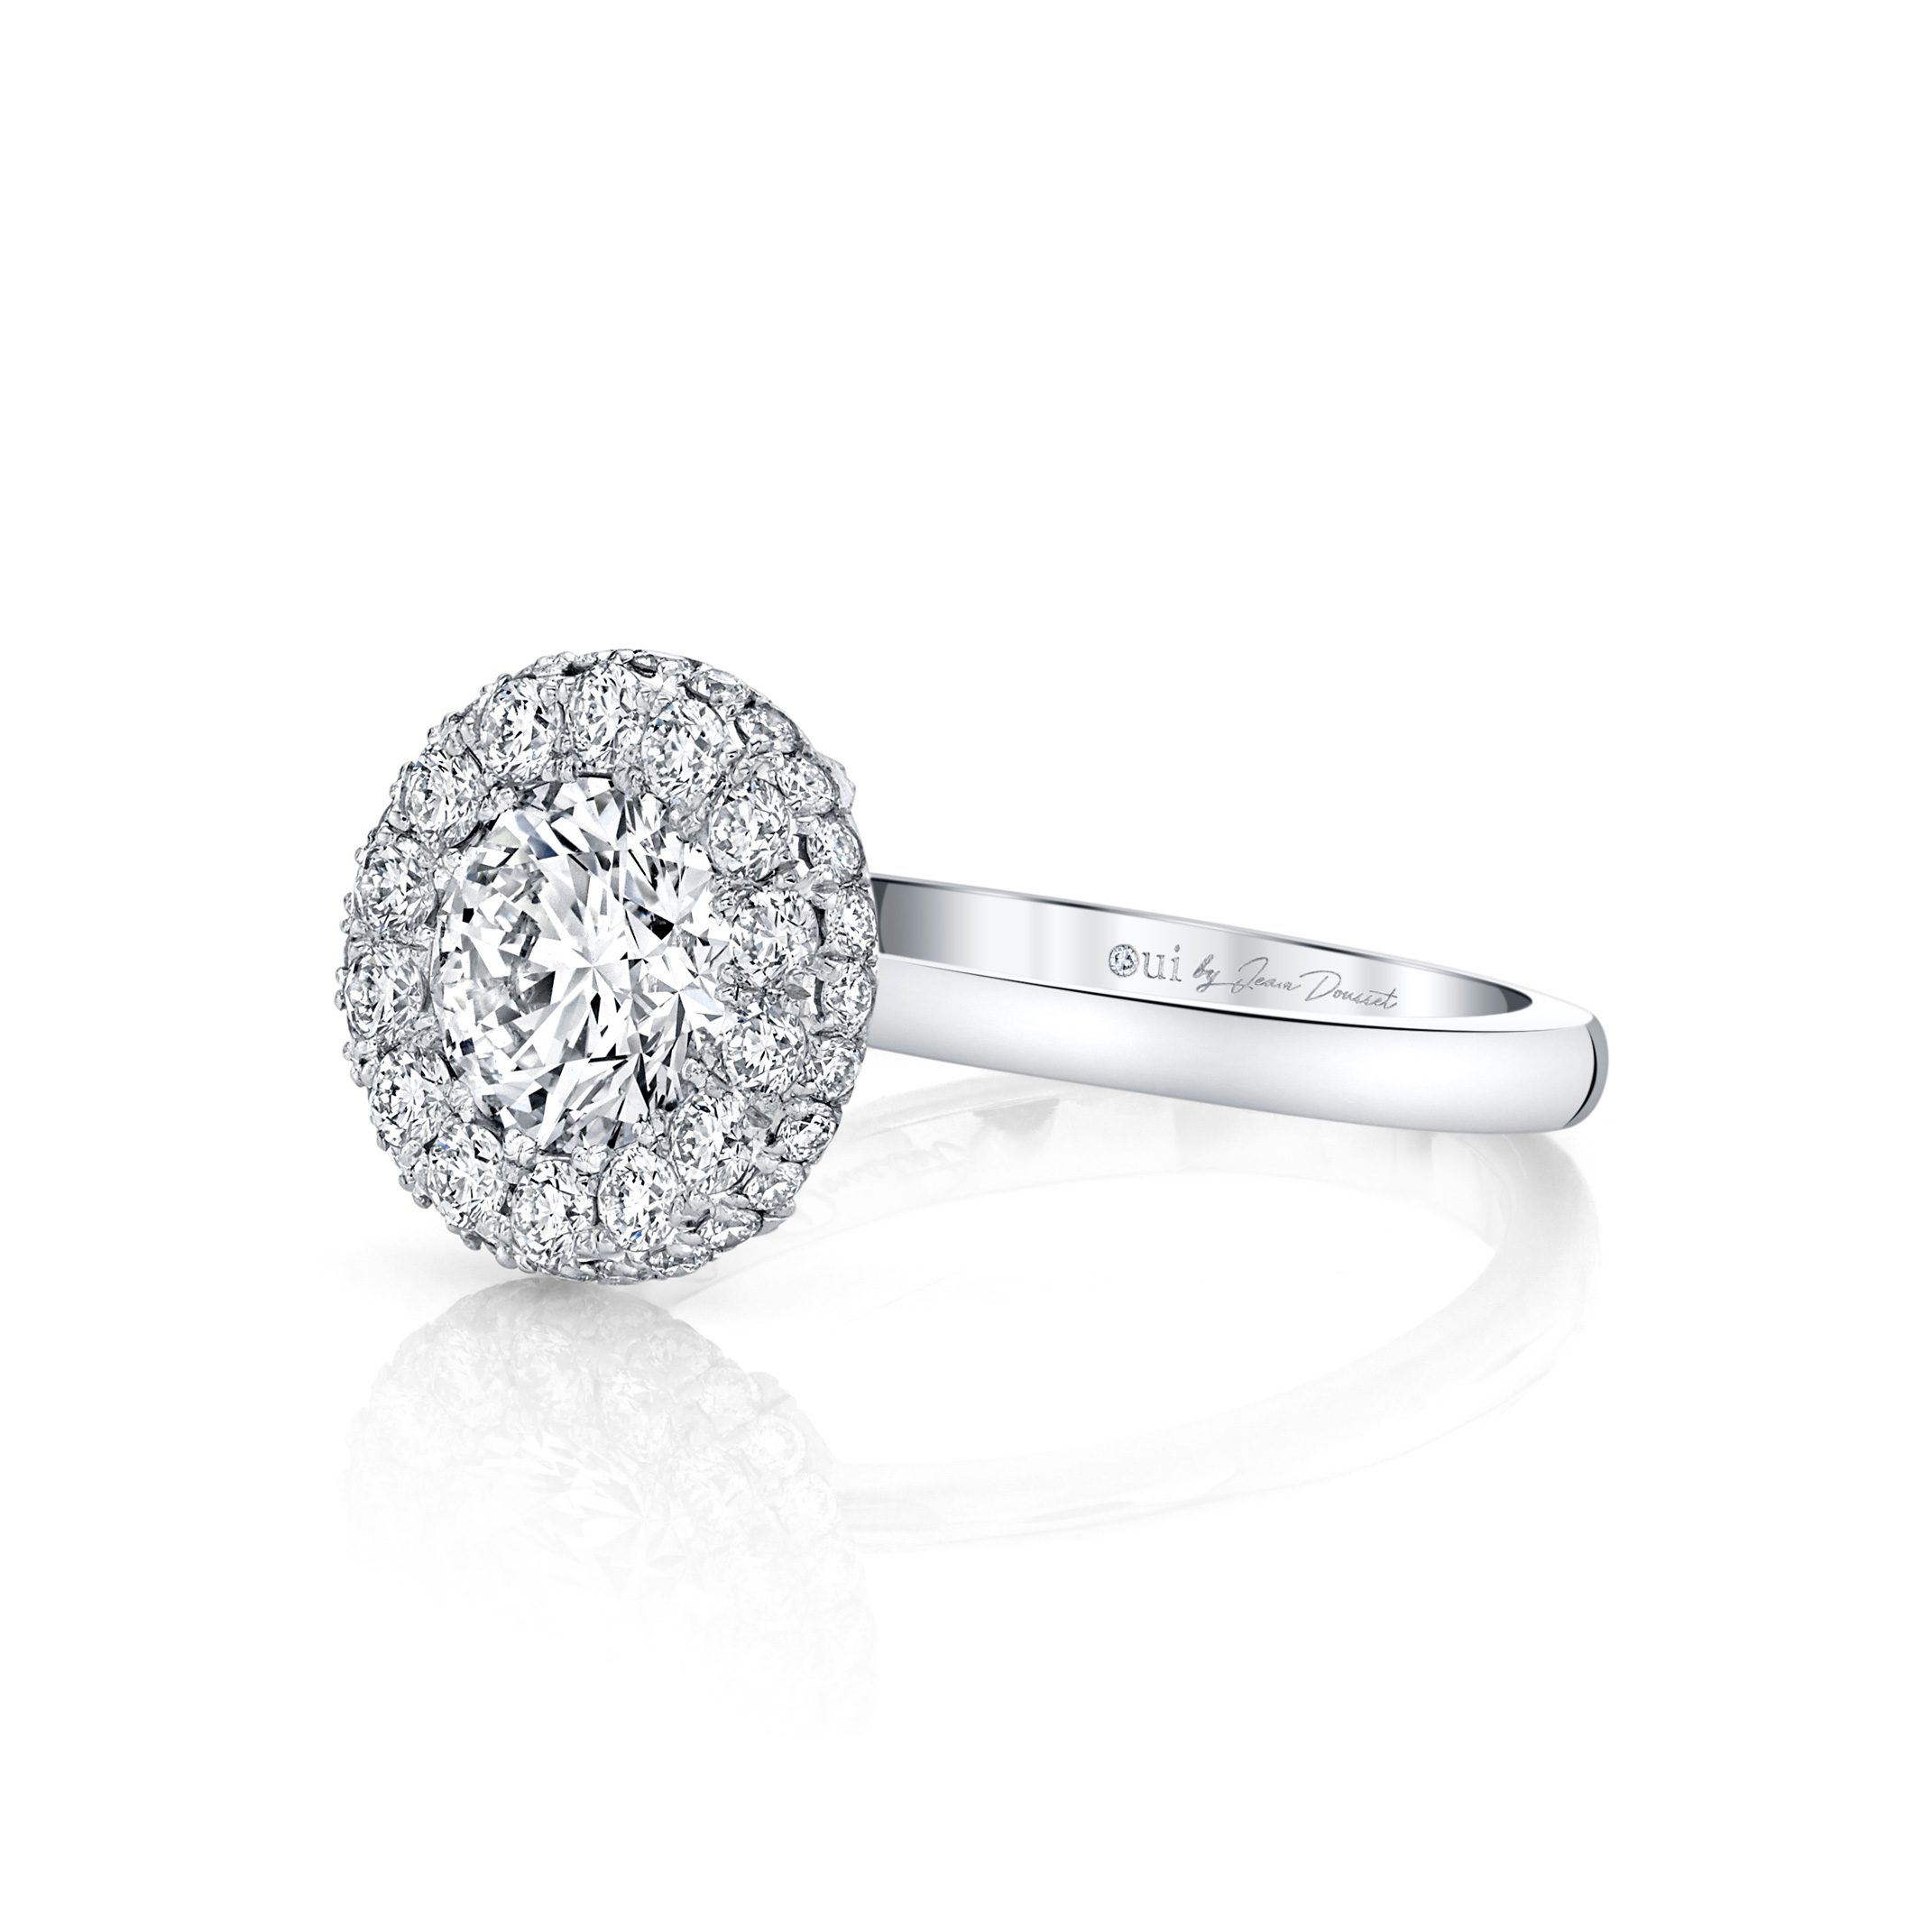 Colette Round Brilliant Seamless Halo® Engagement Ring with a solid band in 18k White Gold Side View by Oui by Jean Dousset